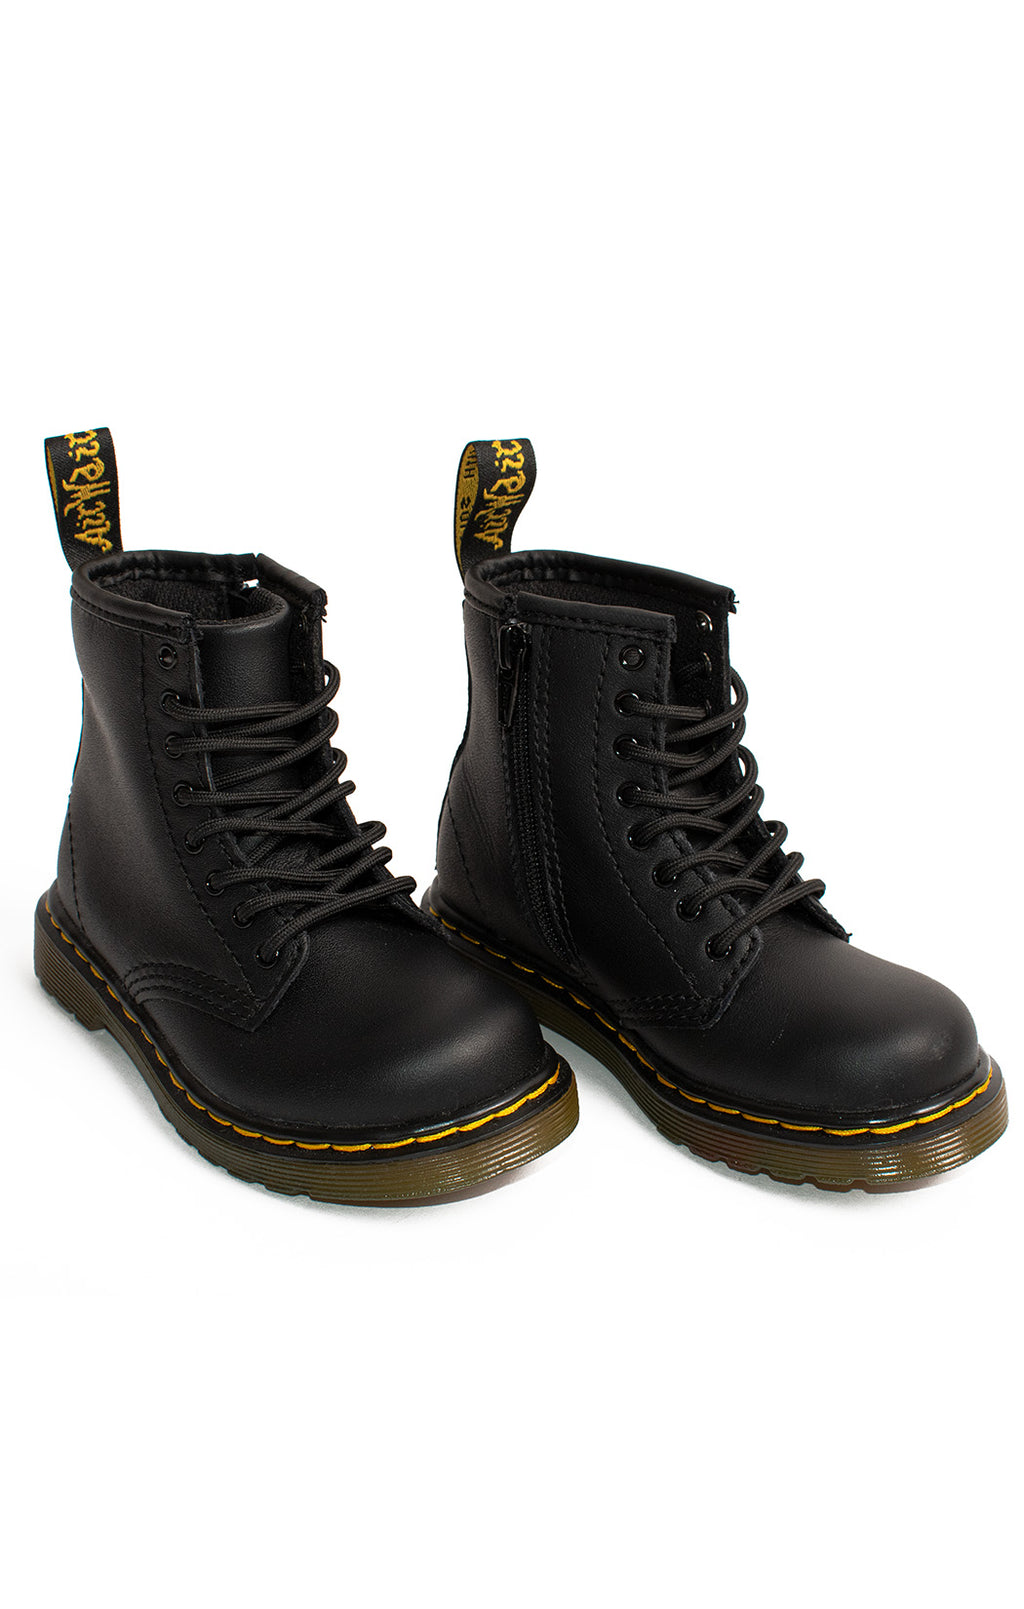 Front view of DR MARTENS  Boots Size: 8 children